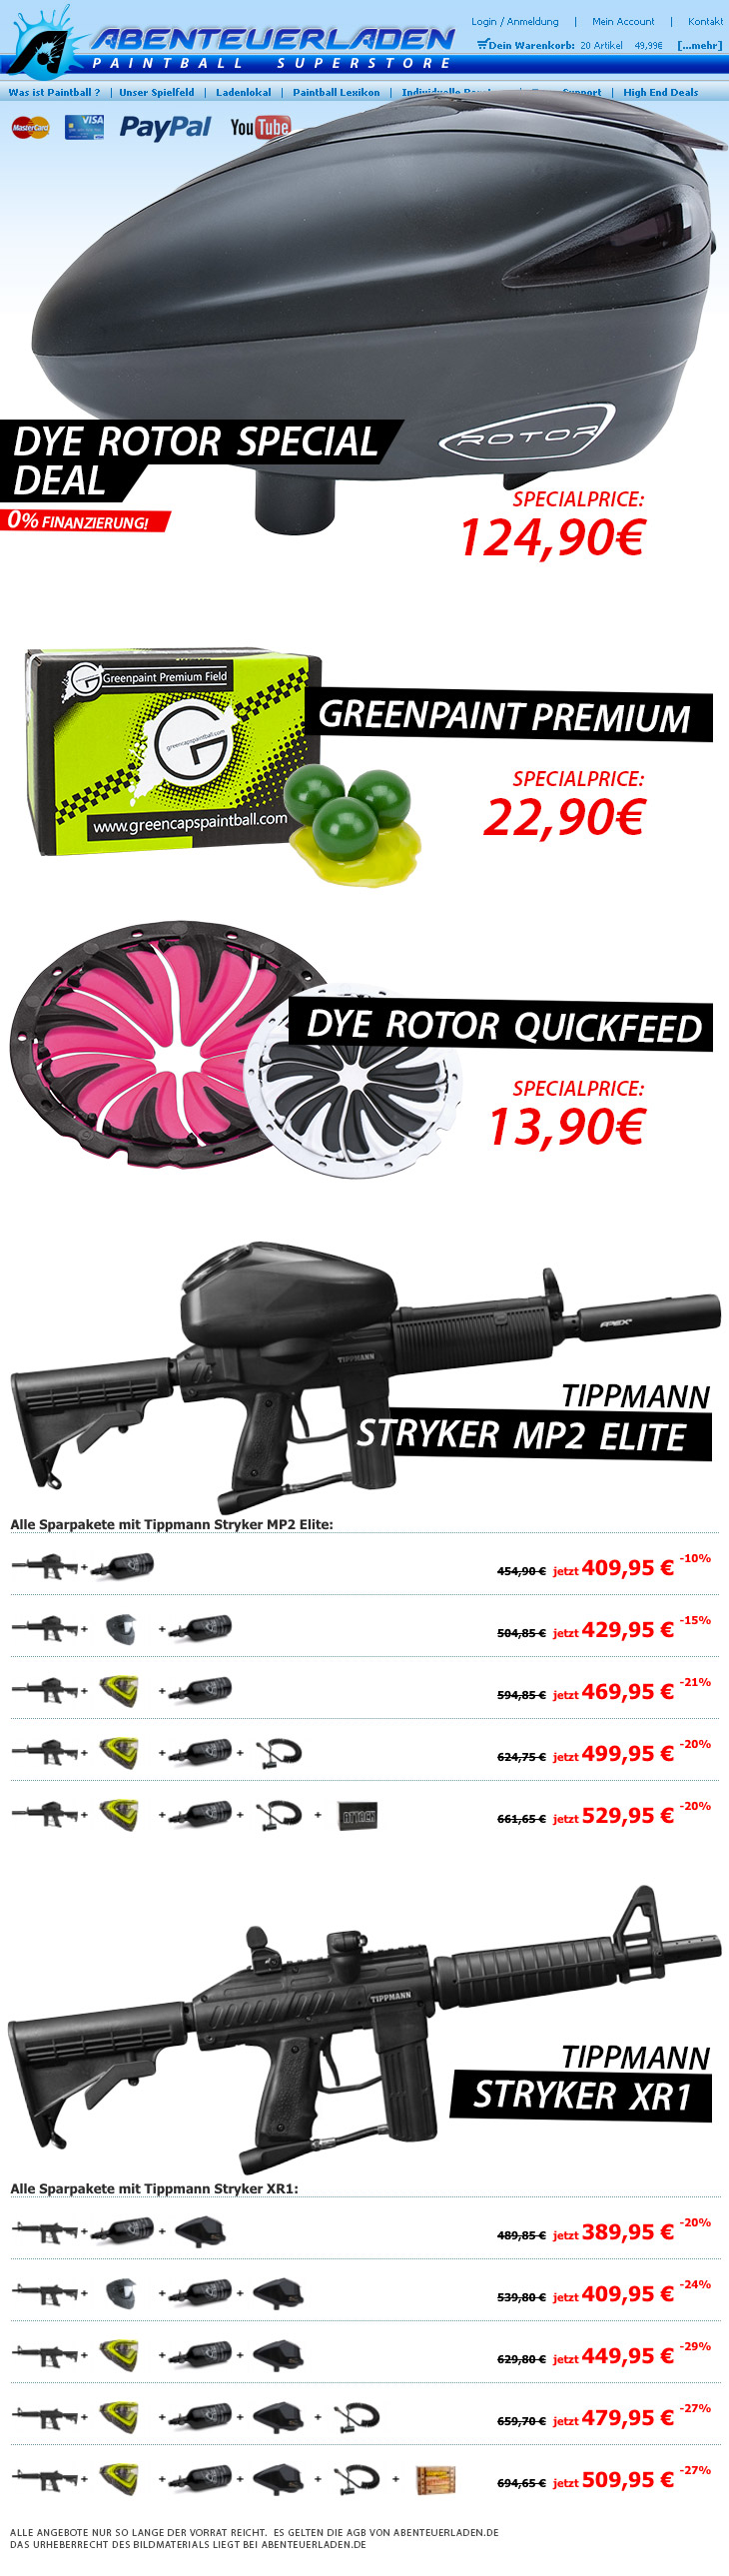 Paintball https://www.abenteuerladen.de/newsletter/14-03-2017.jpg Picture